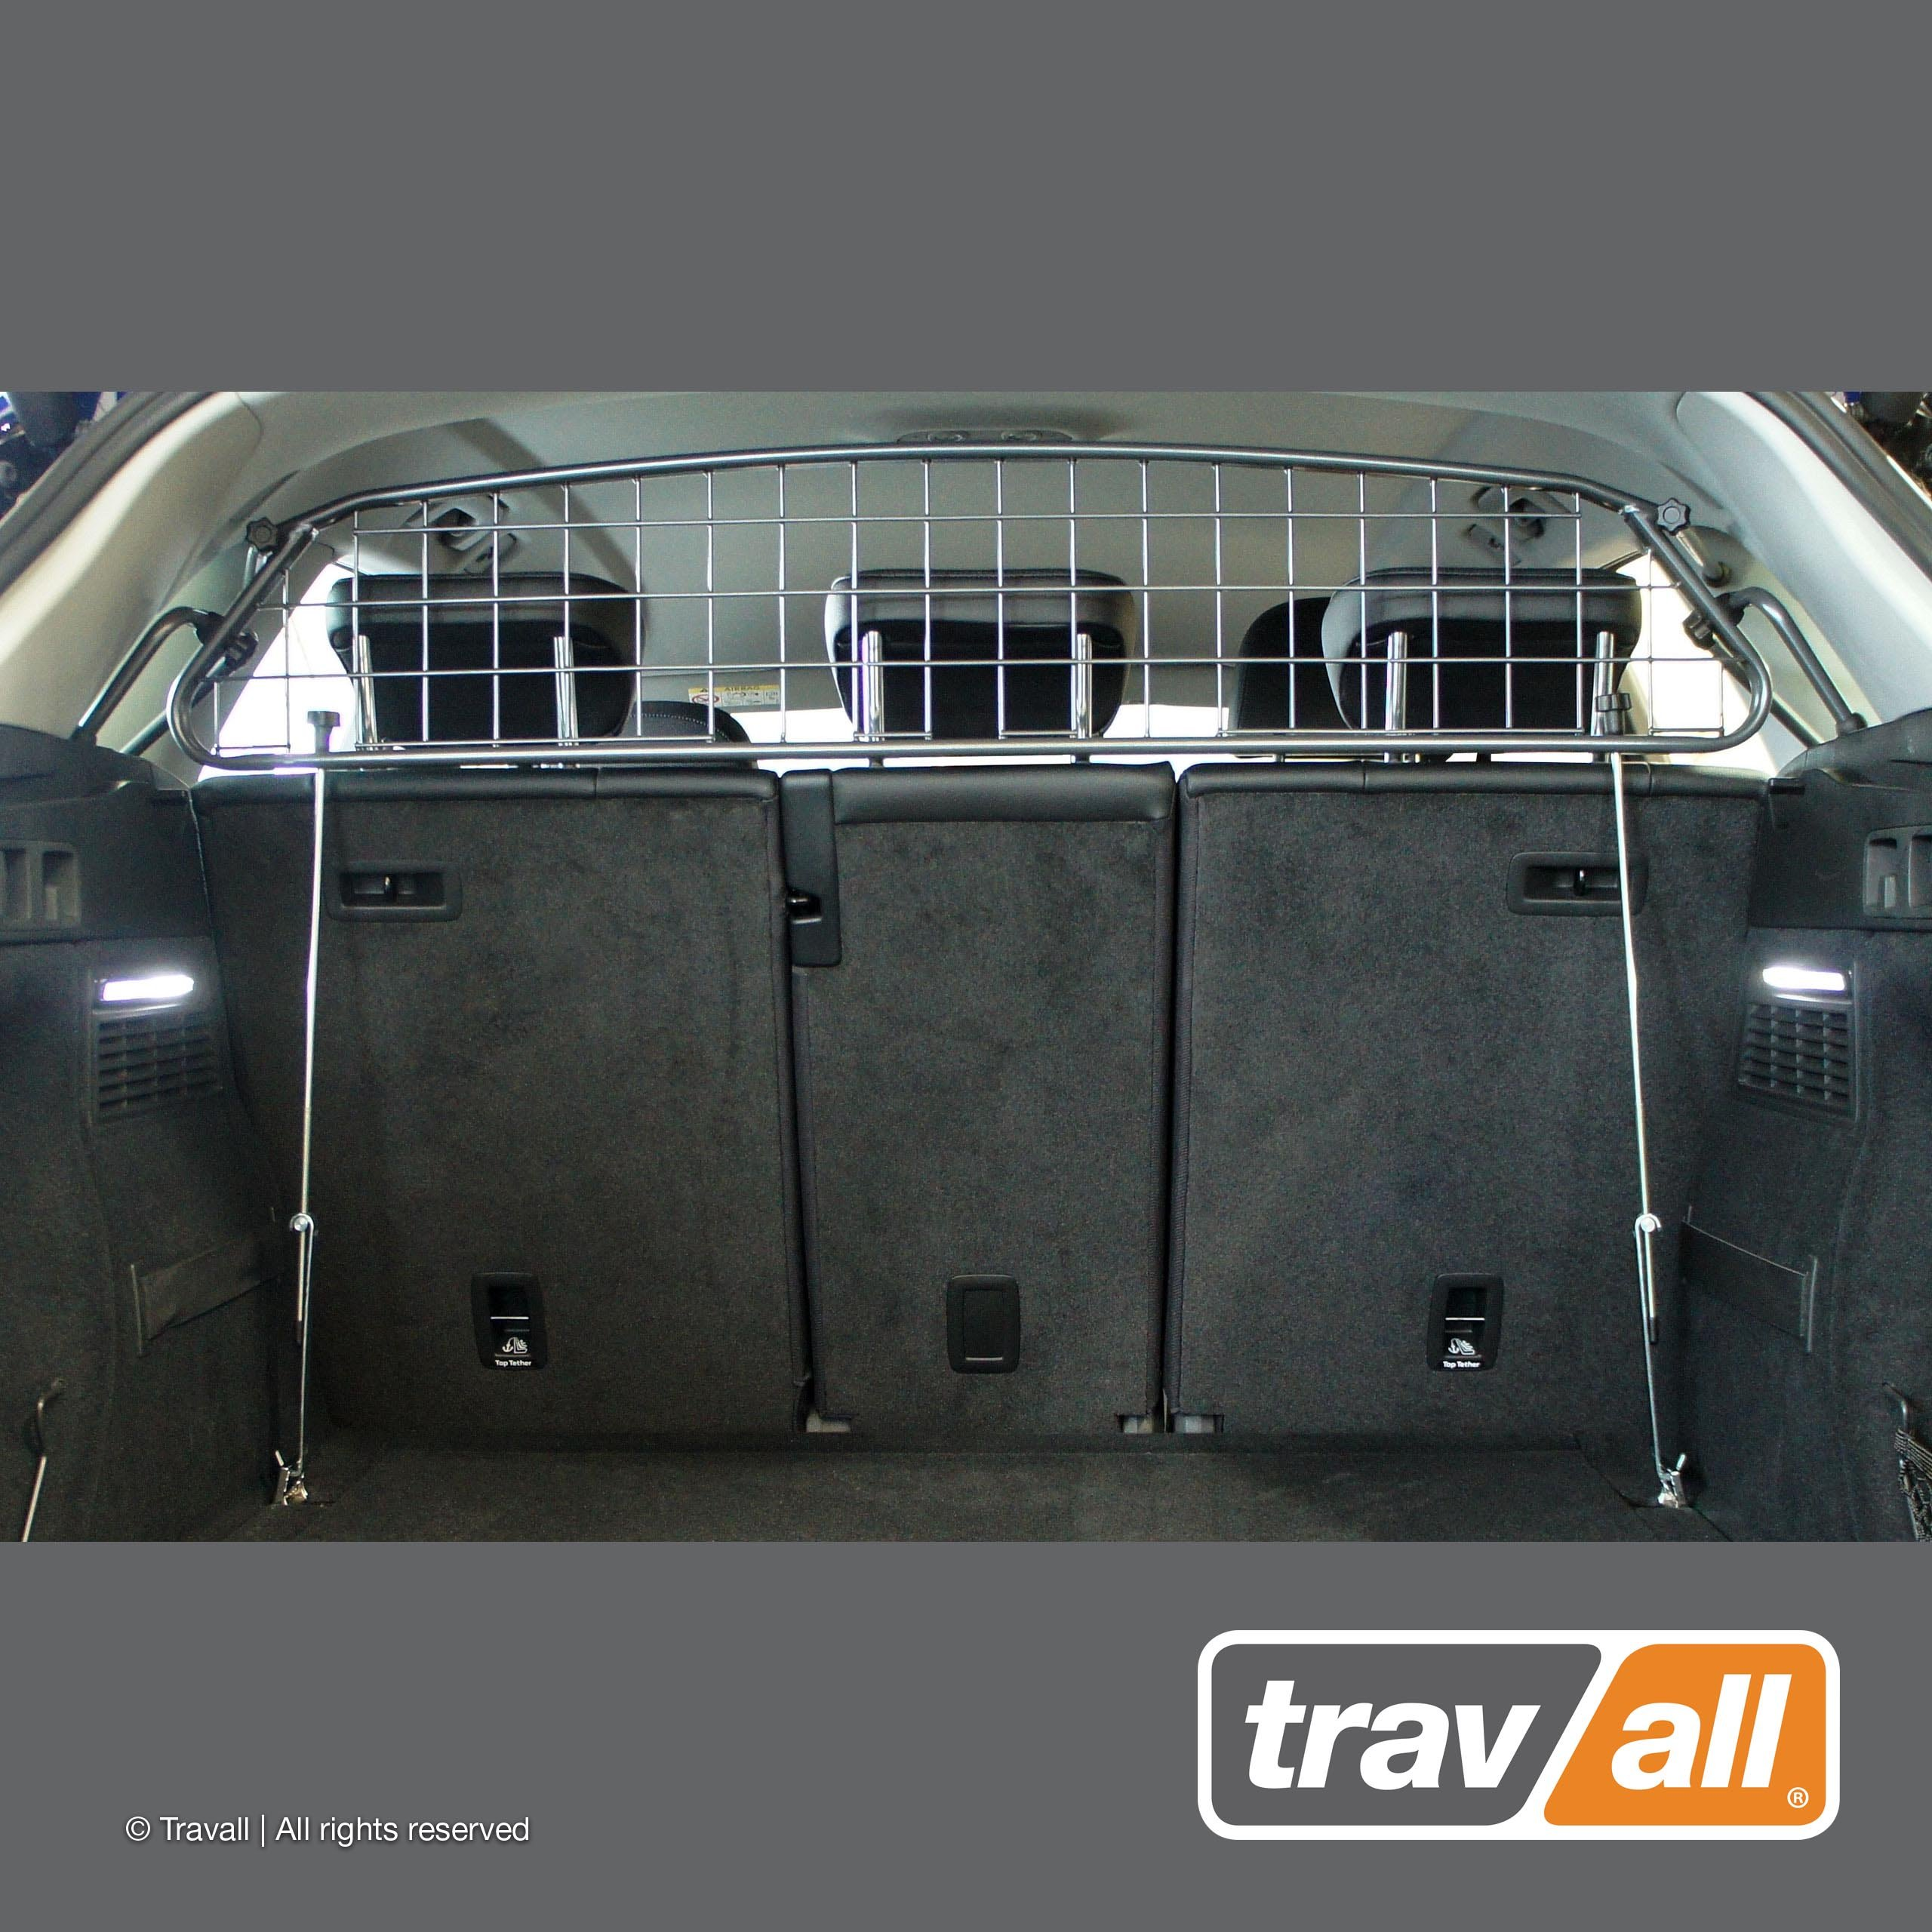 Travall Guard Compatible with Audi Q5 (2016-Current) Also for Audi SQ5 (2017-Current) TDG1530 - Rattle-Free Luggage and Pet Barrier